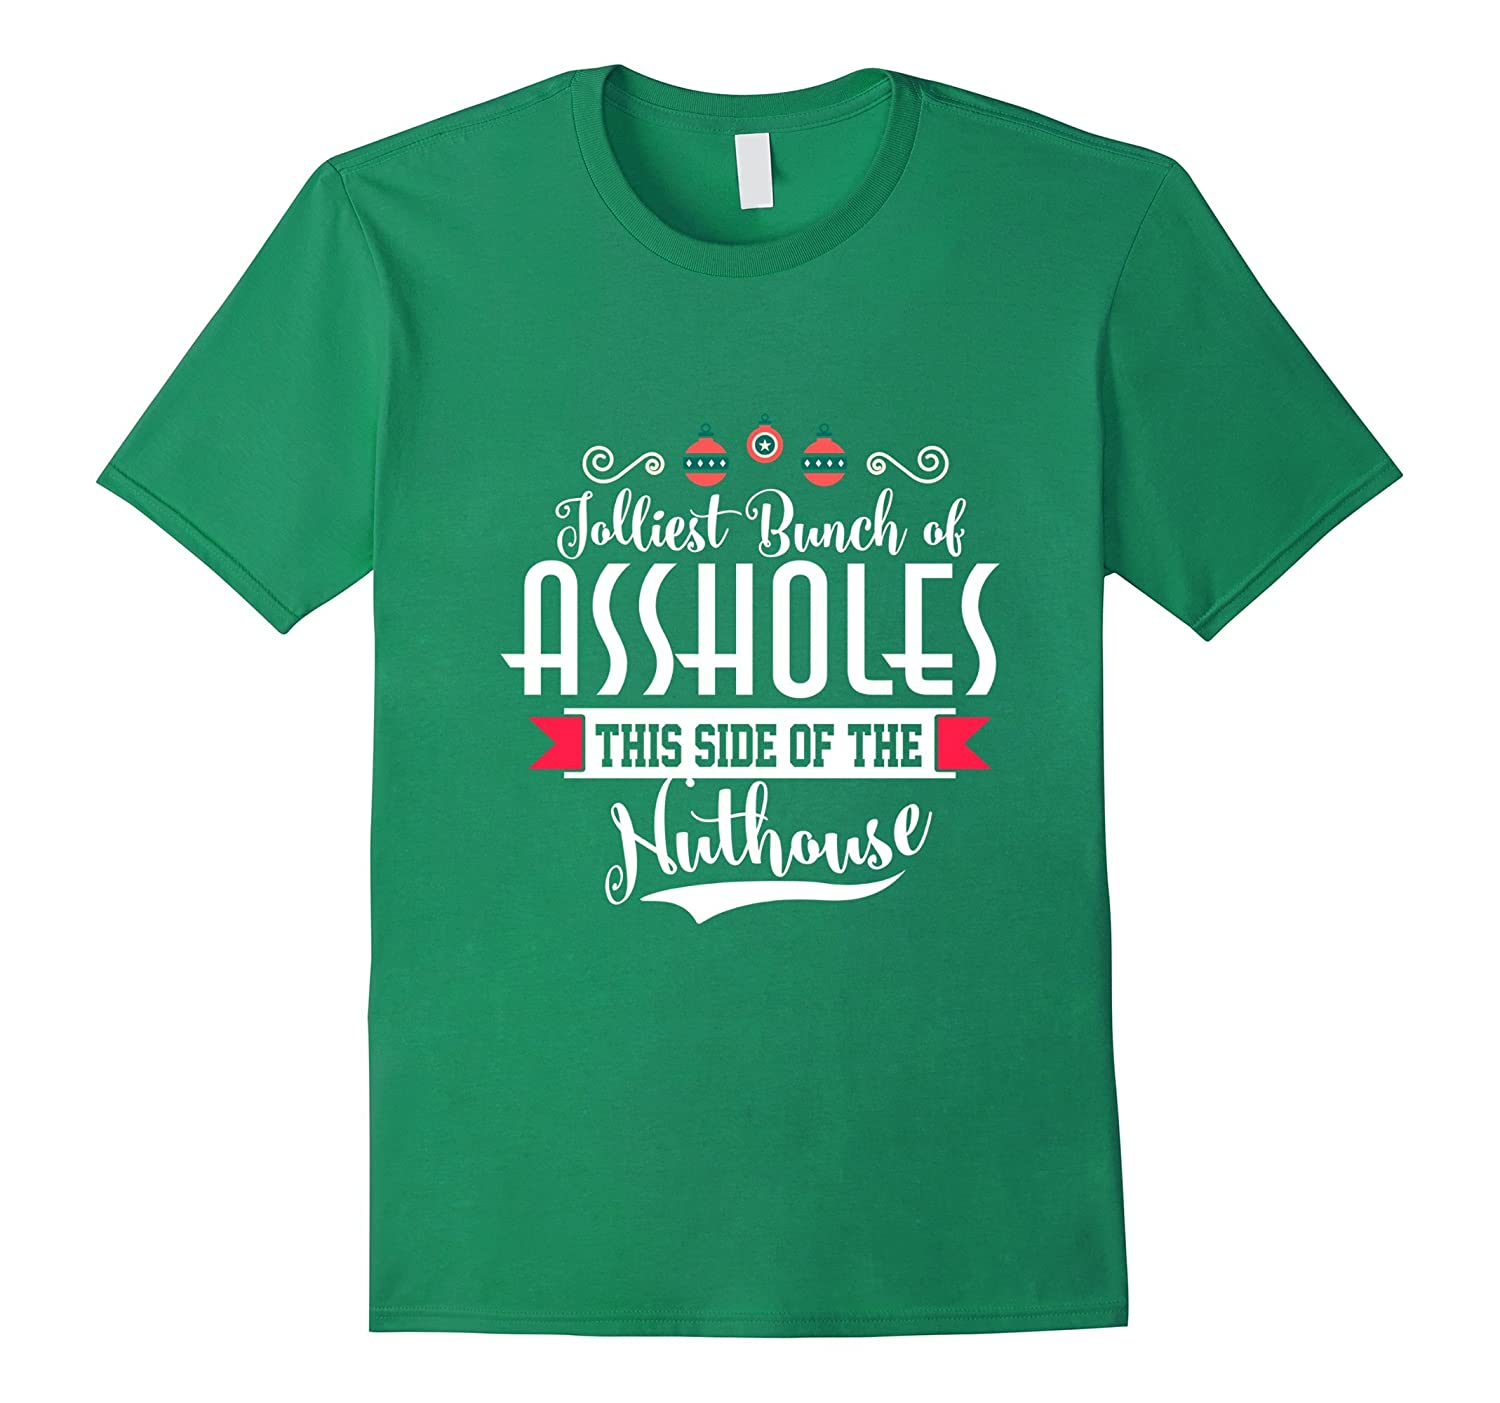 Christmas Vacation Quotes Jolliest Bunch Of: Jolliest Bunch Of A-holes Funny Christmas Quote Holiday